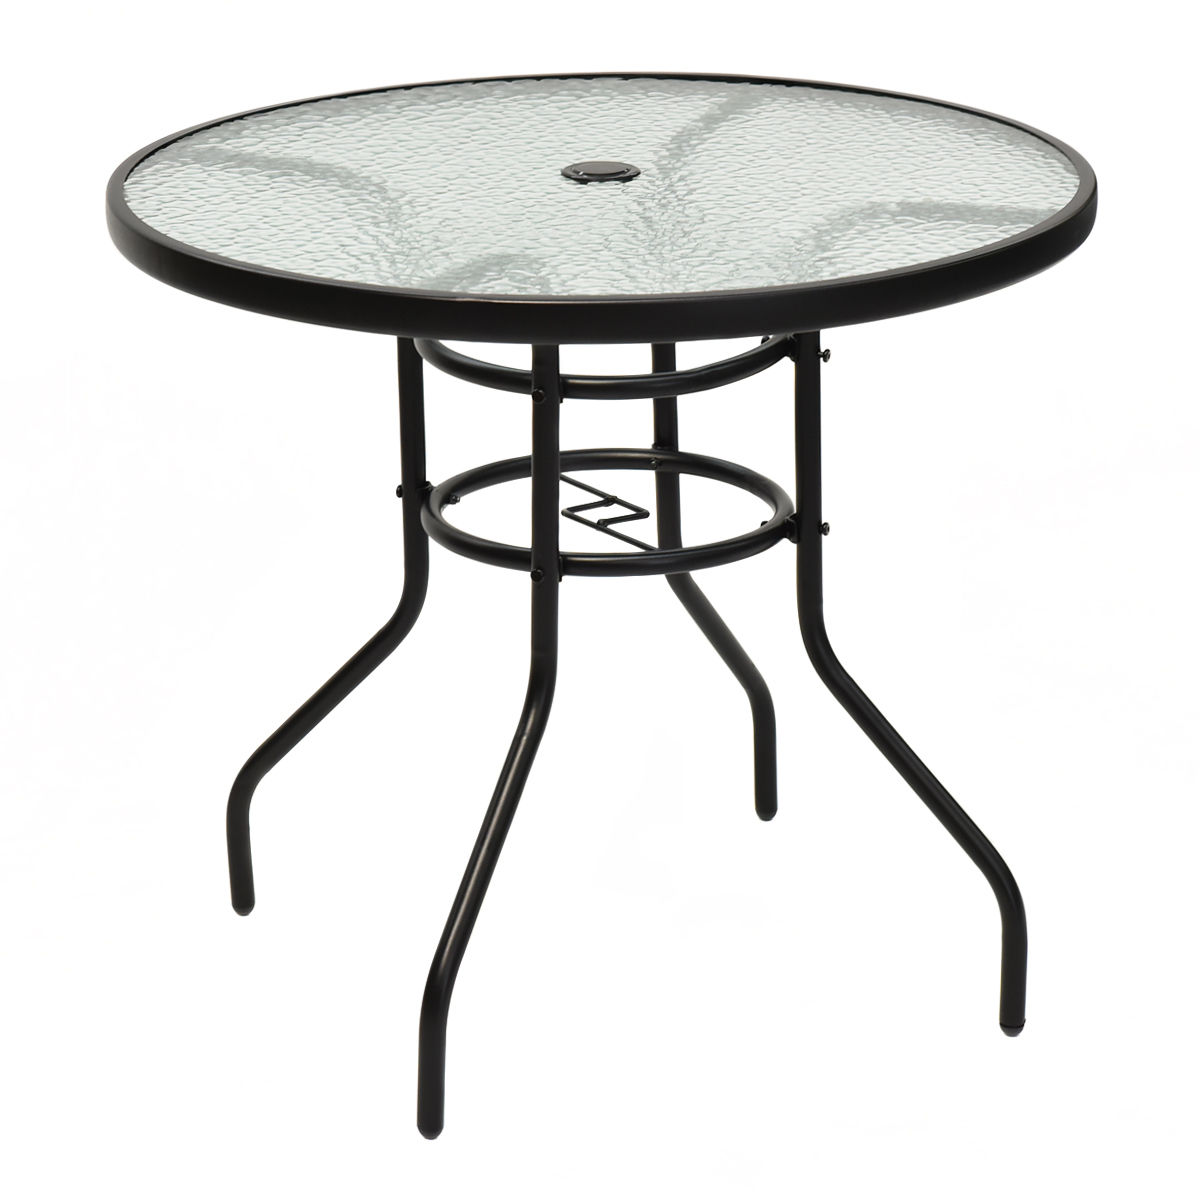 Costway 31 1/2'' Patio Round Table Tempered Glass Steel Frame Outdoor Pool Yard Garden - Walmart.com   Tuggl